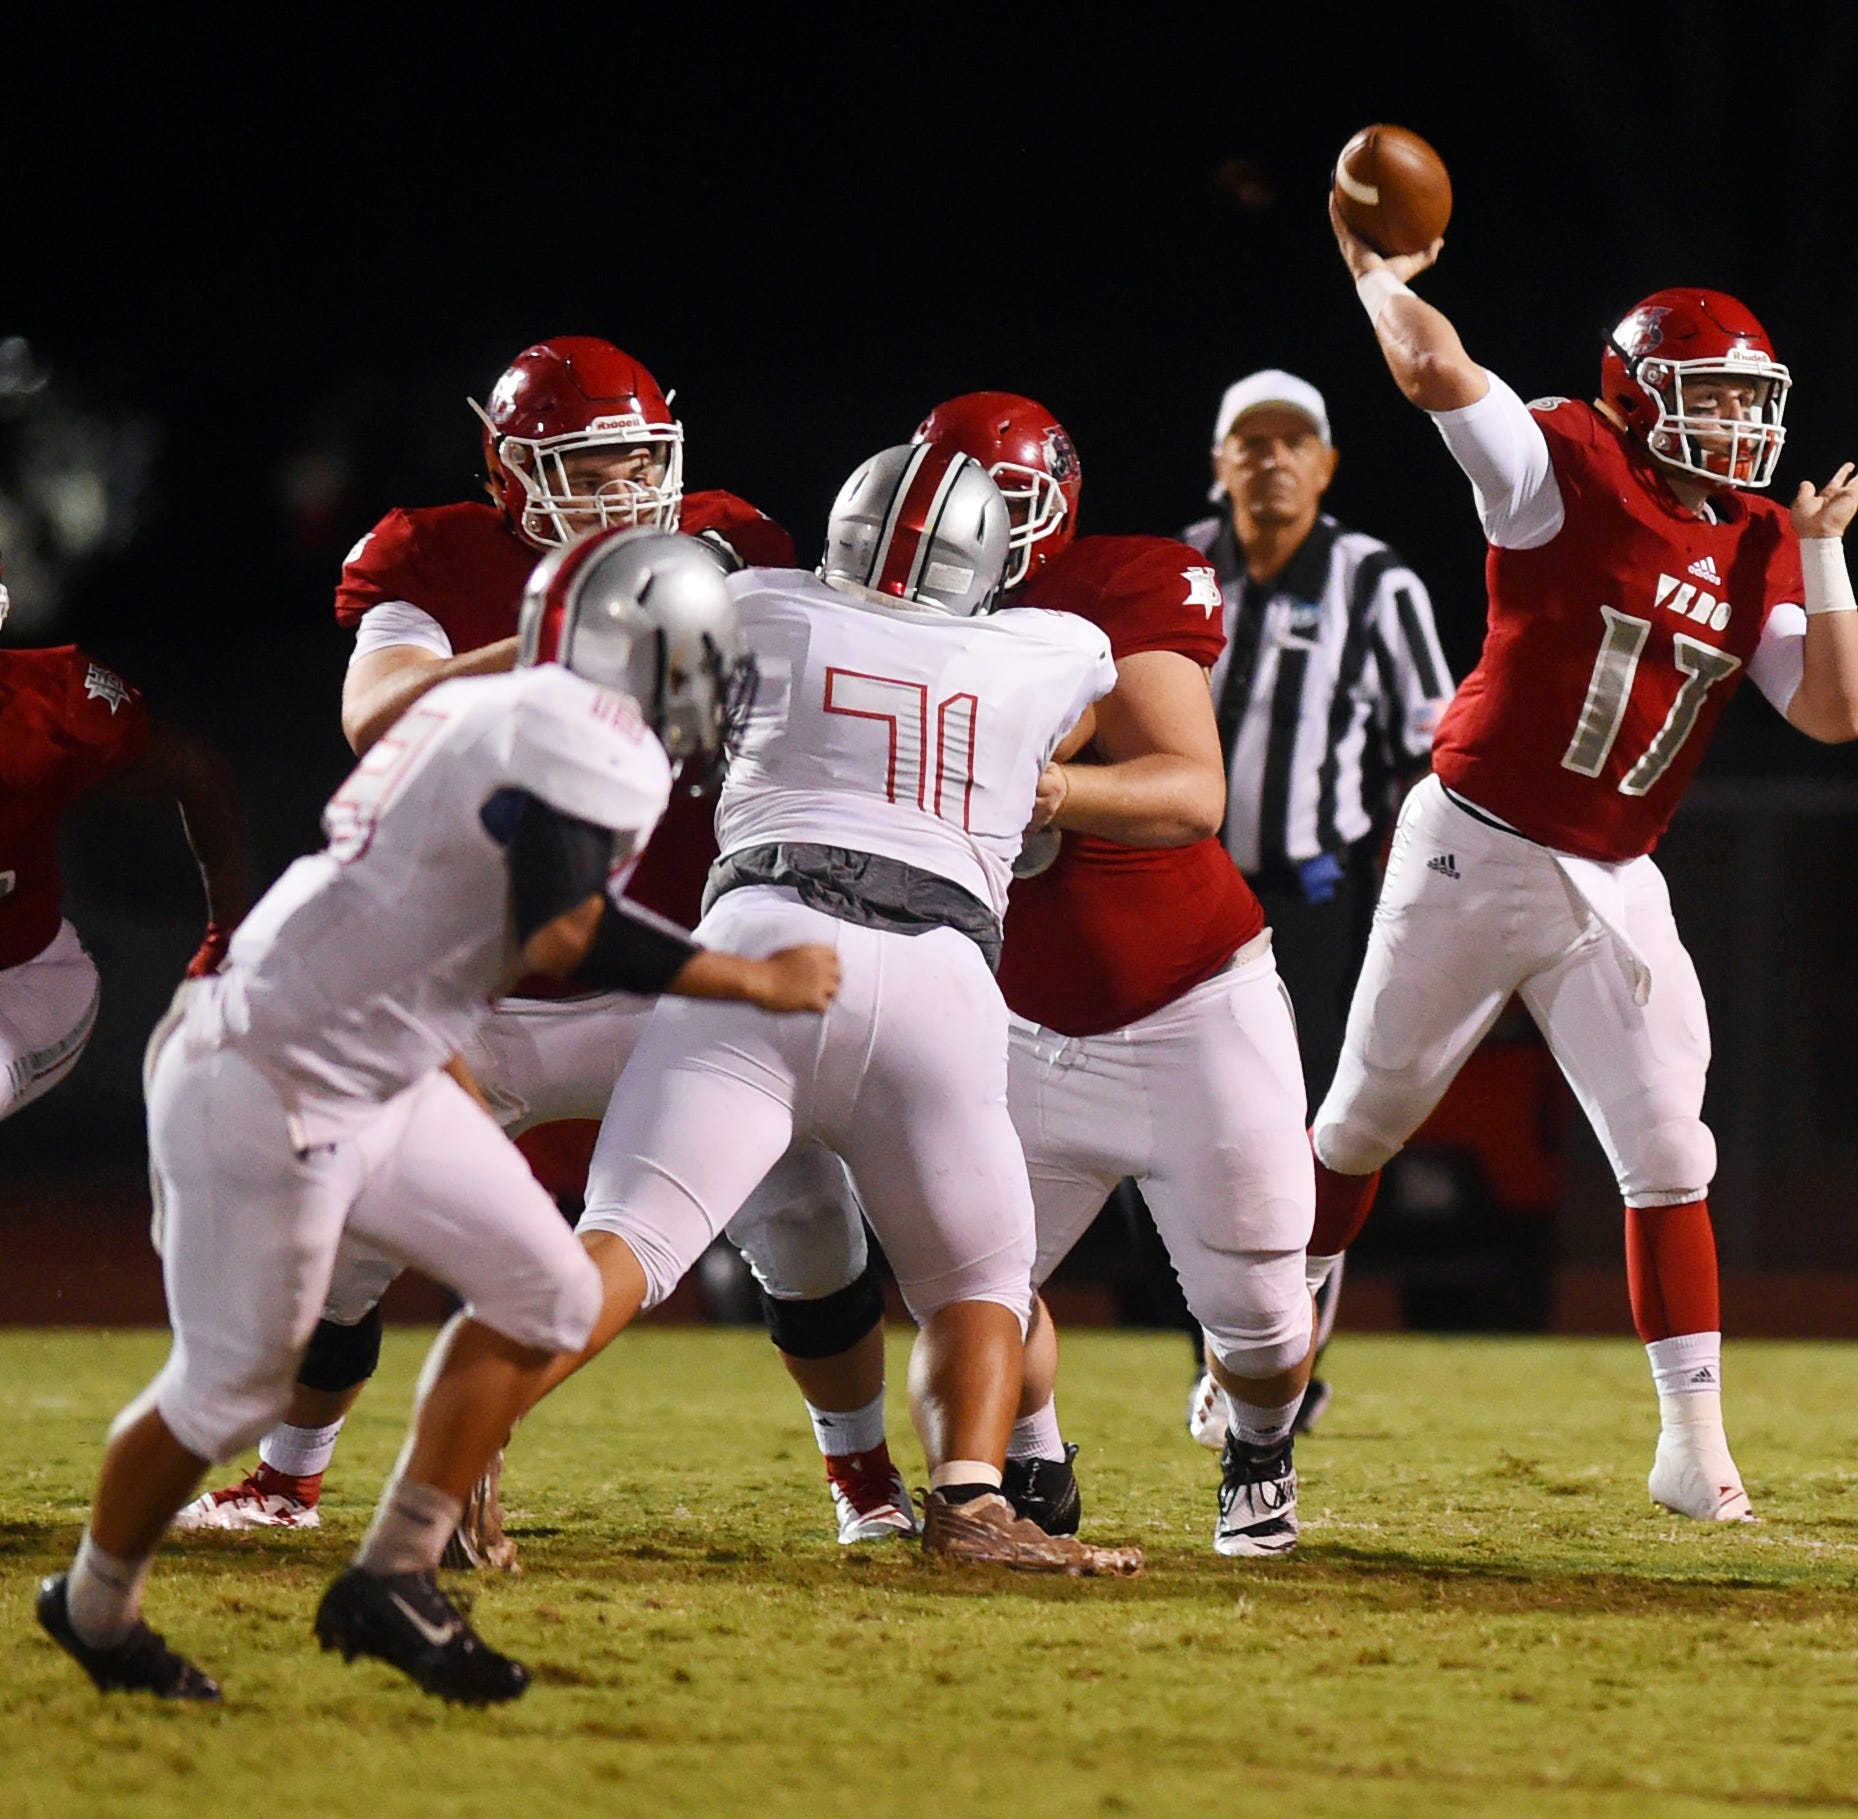 Vero Beach offense clicks in 48-6 quarterfinal rout